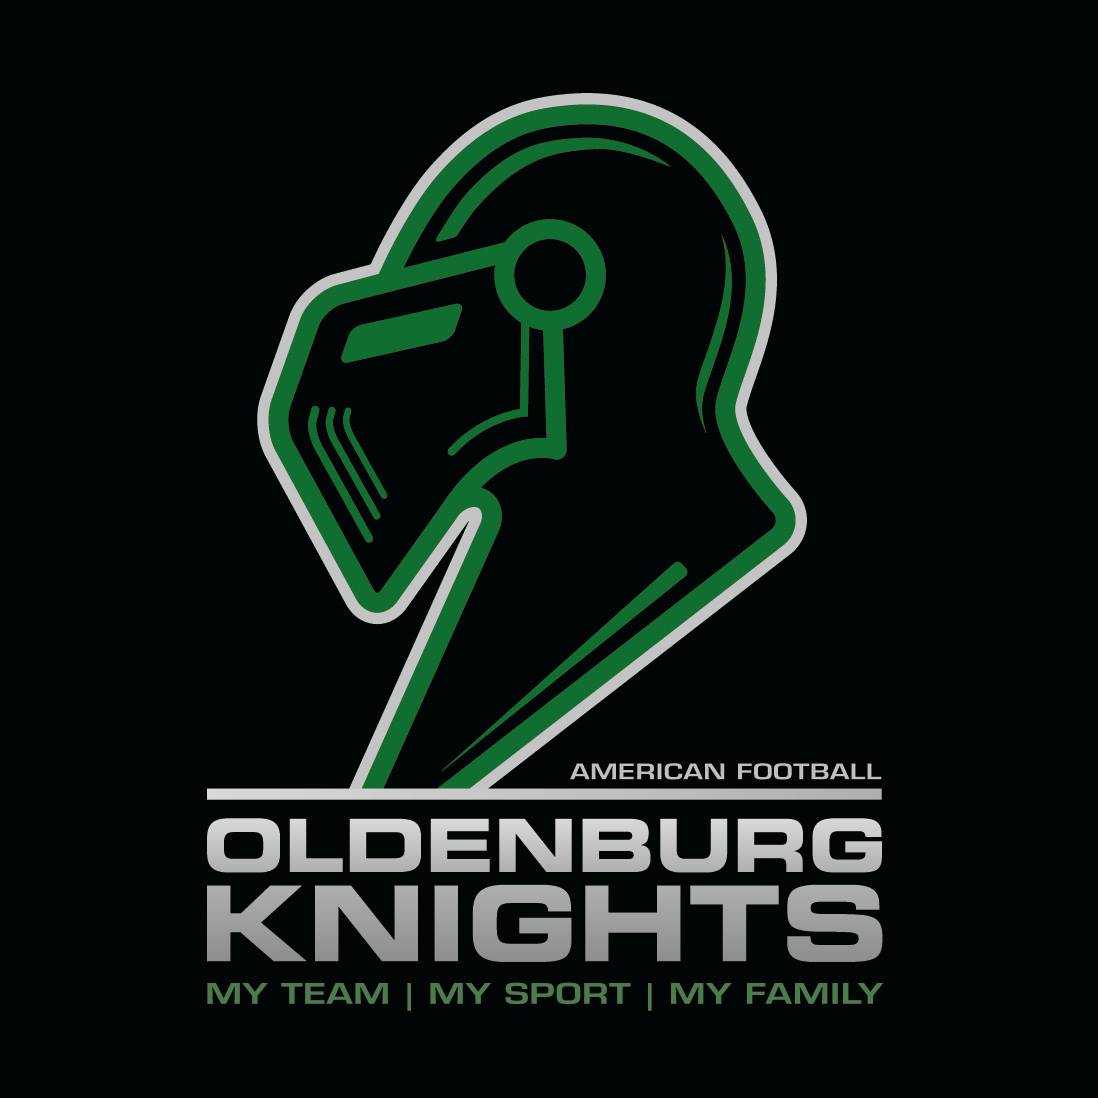 Oldenburg Knights